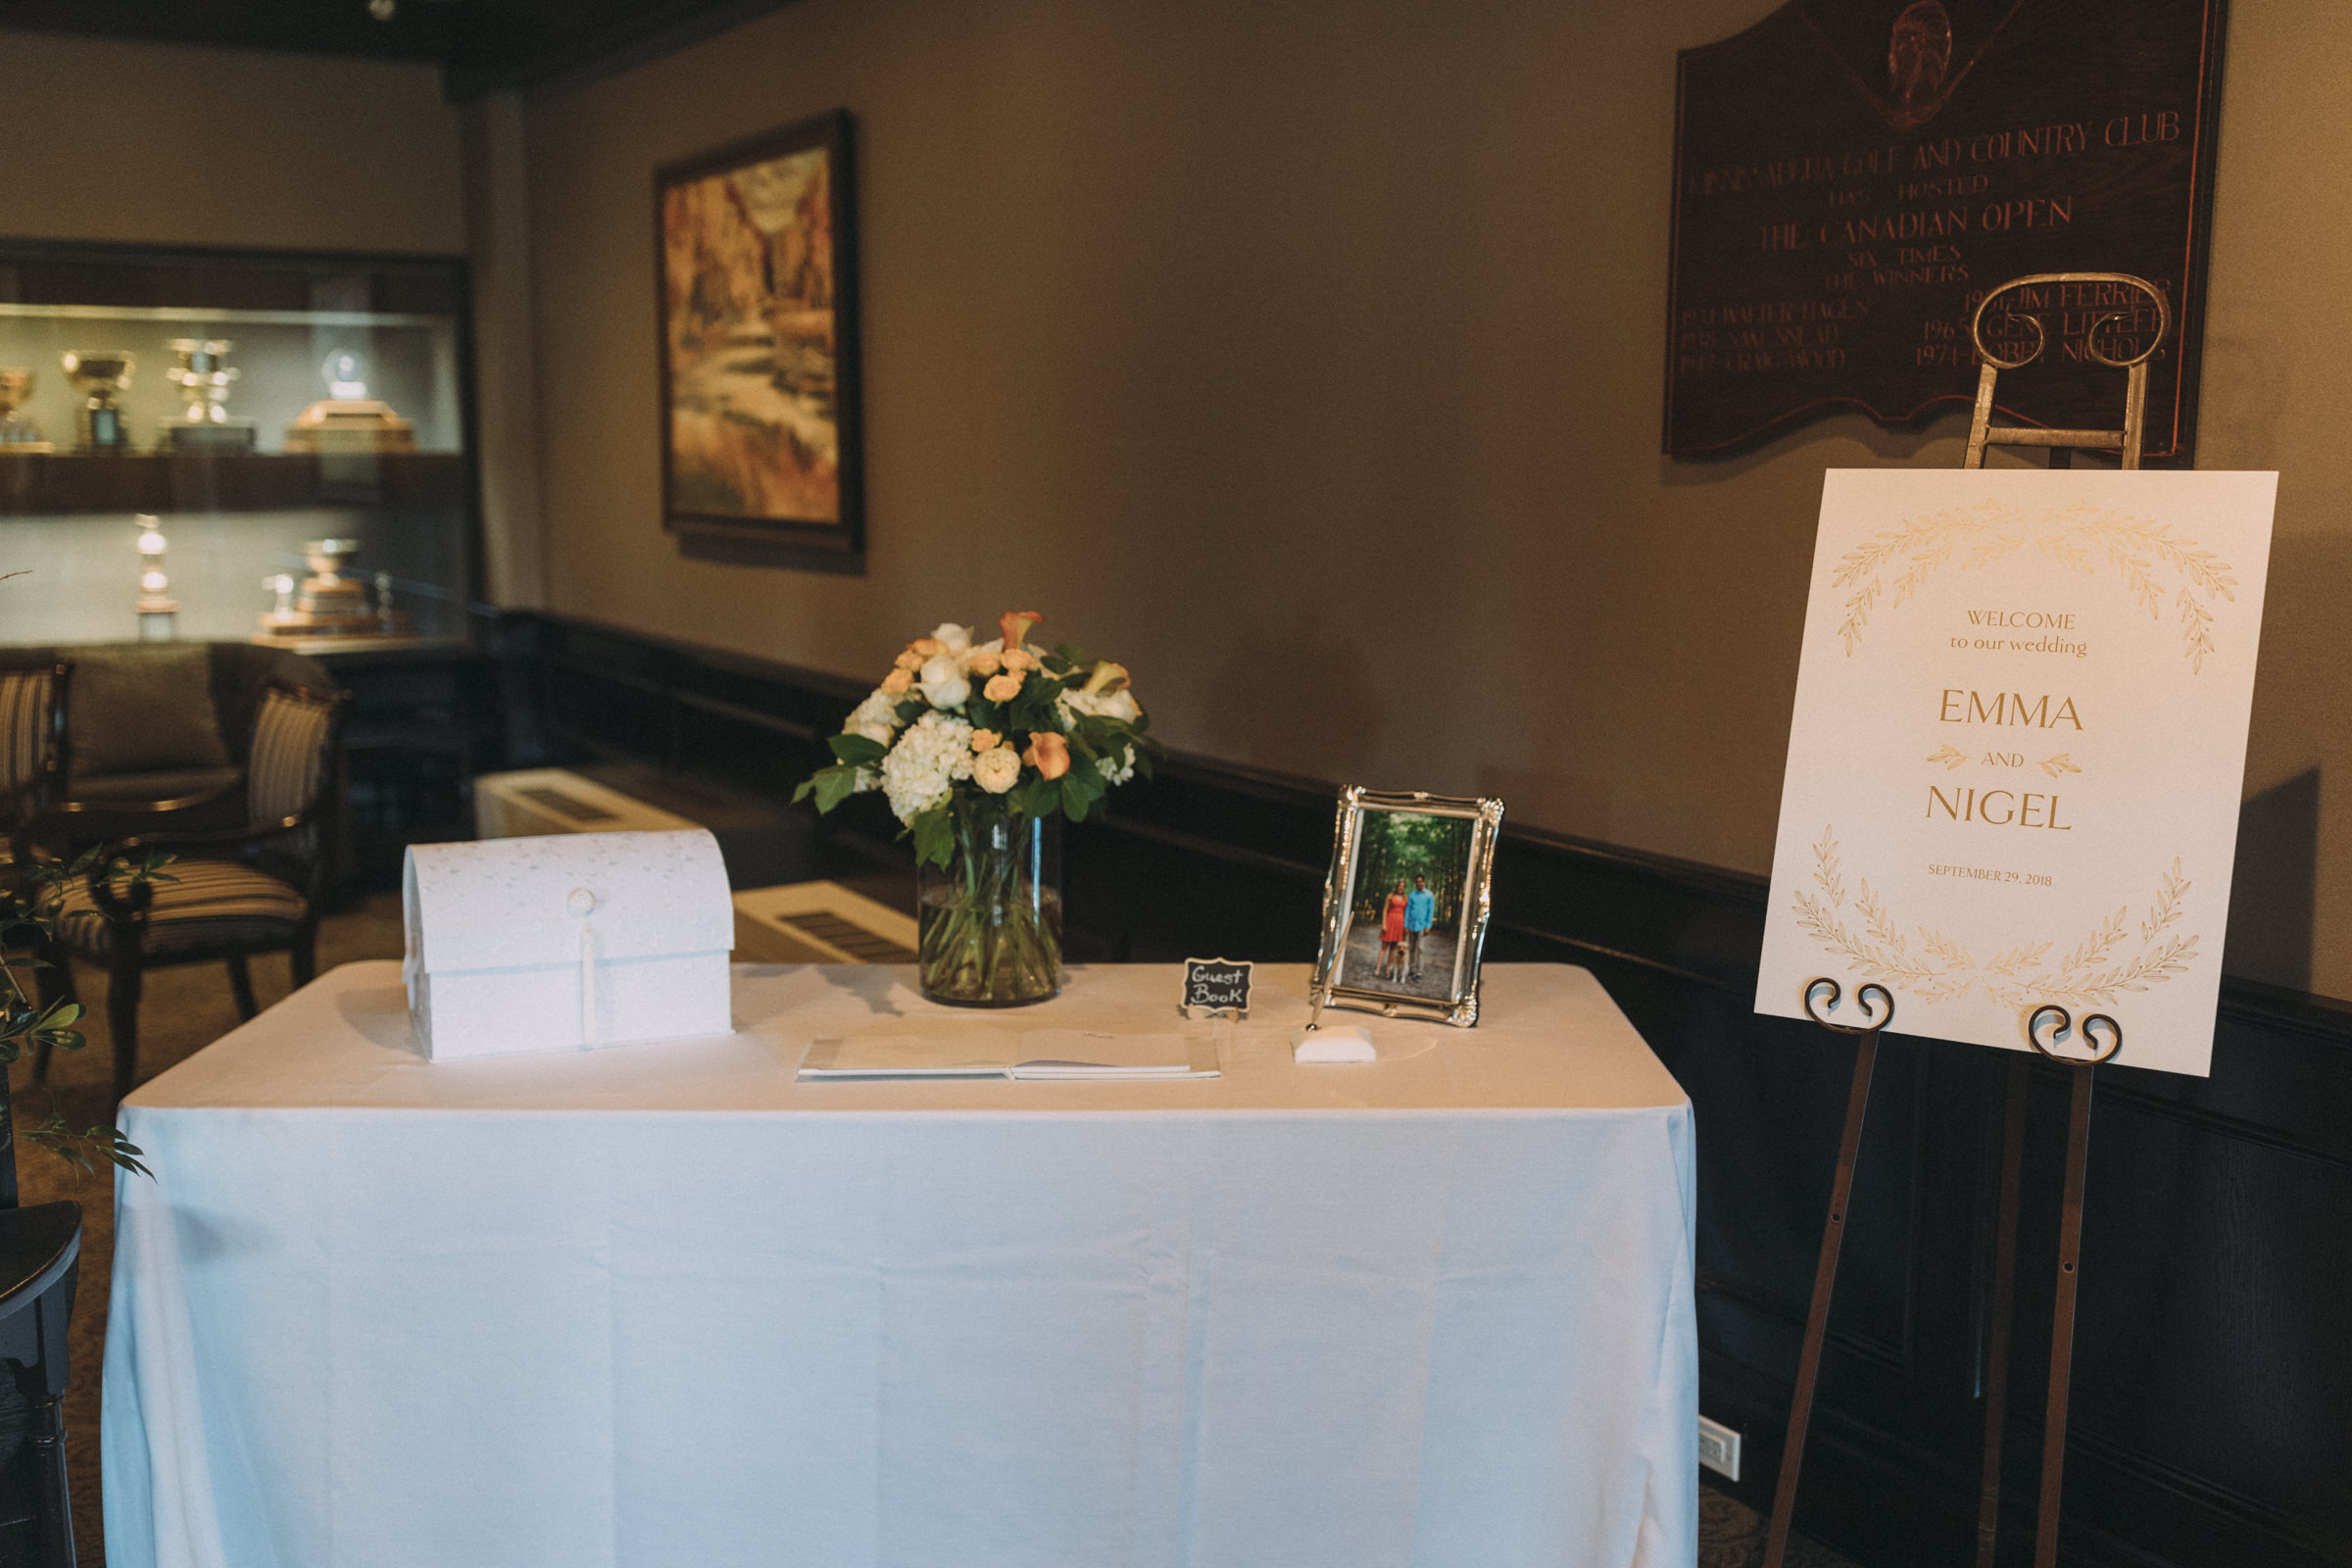 Mississaugua-Golf-and-Country-Club-wedding-photography-Emma-and-Nigel-by-Sam-Wong-of-Visual-Cravings_39.jpg